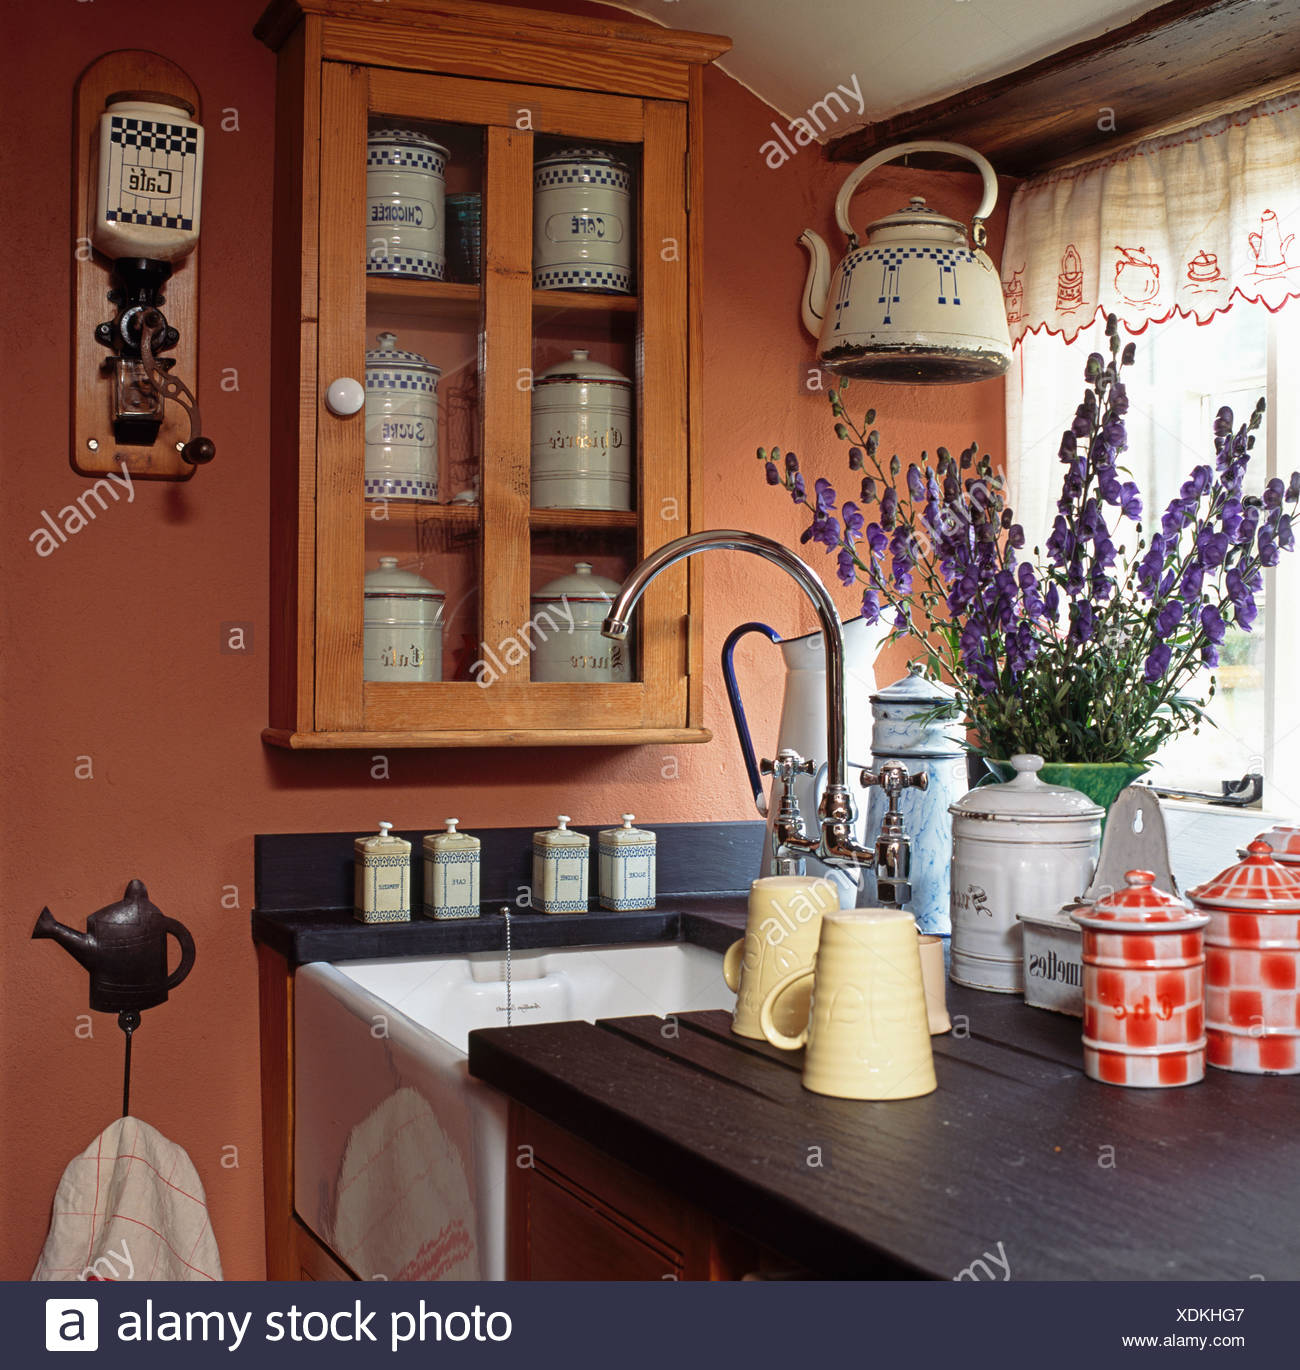 Kitchen Storage Tins Stockfotos & Kitchen Storage Tins Bilder - Alamy